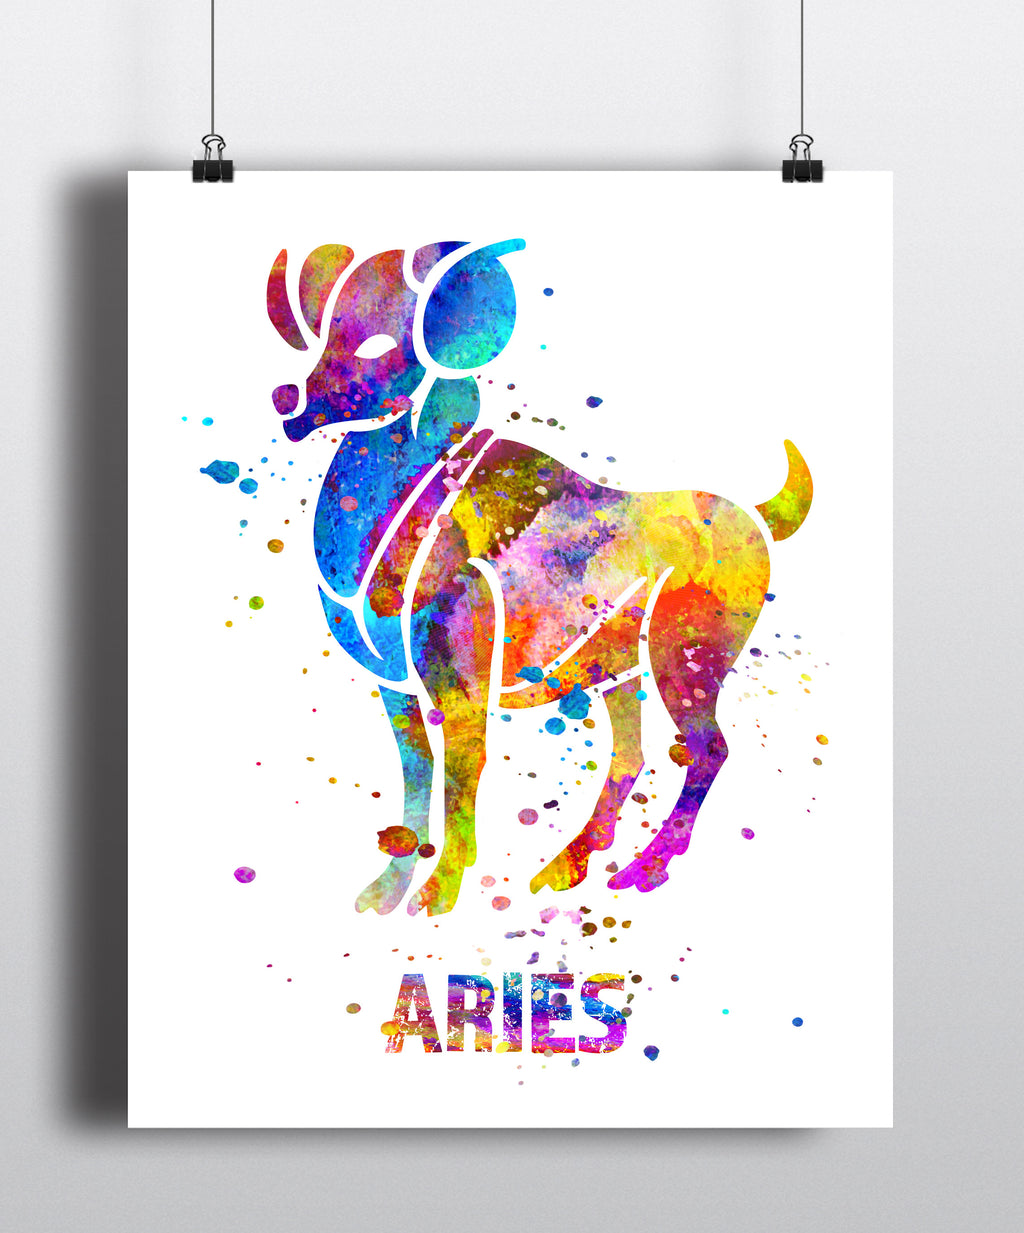 Aries Astrology Art Print - Unframed - Zuzi's